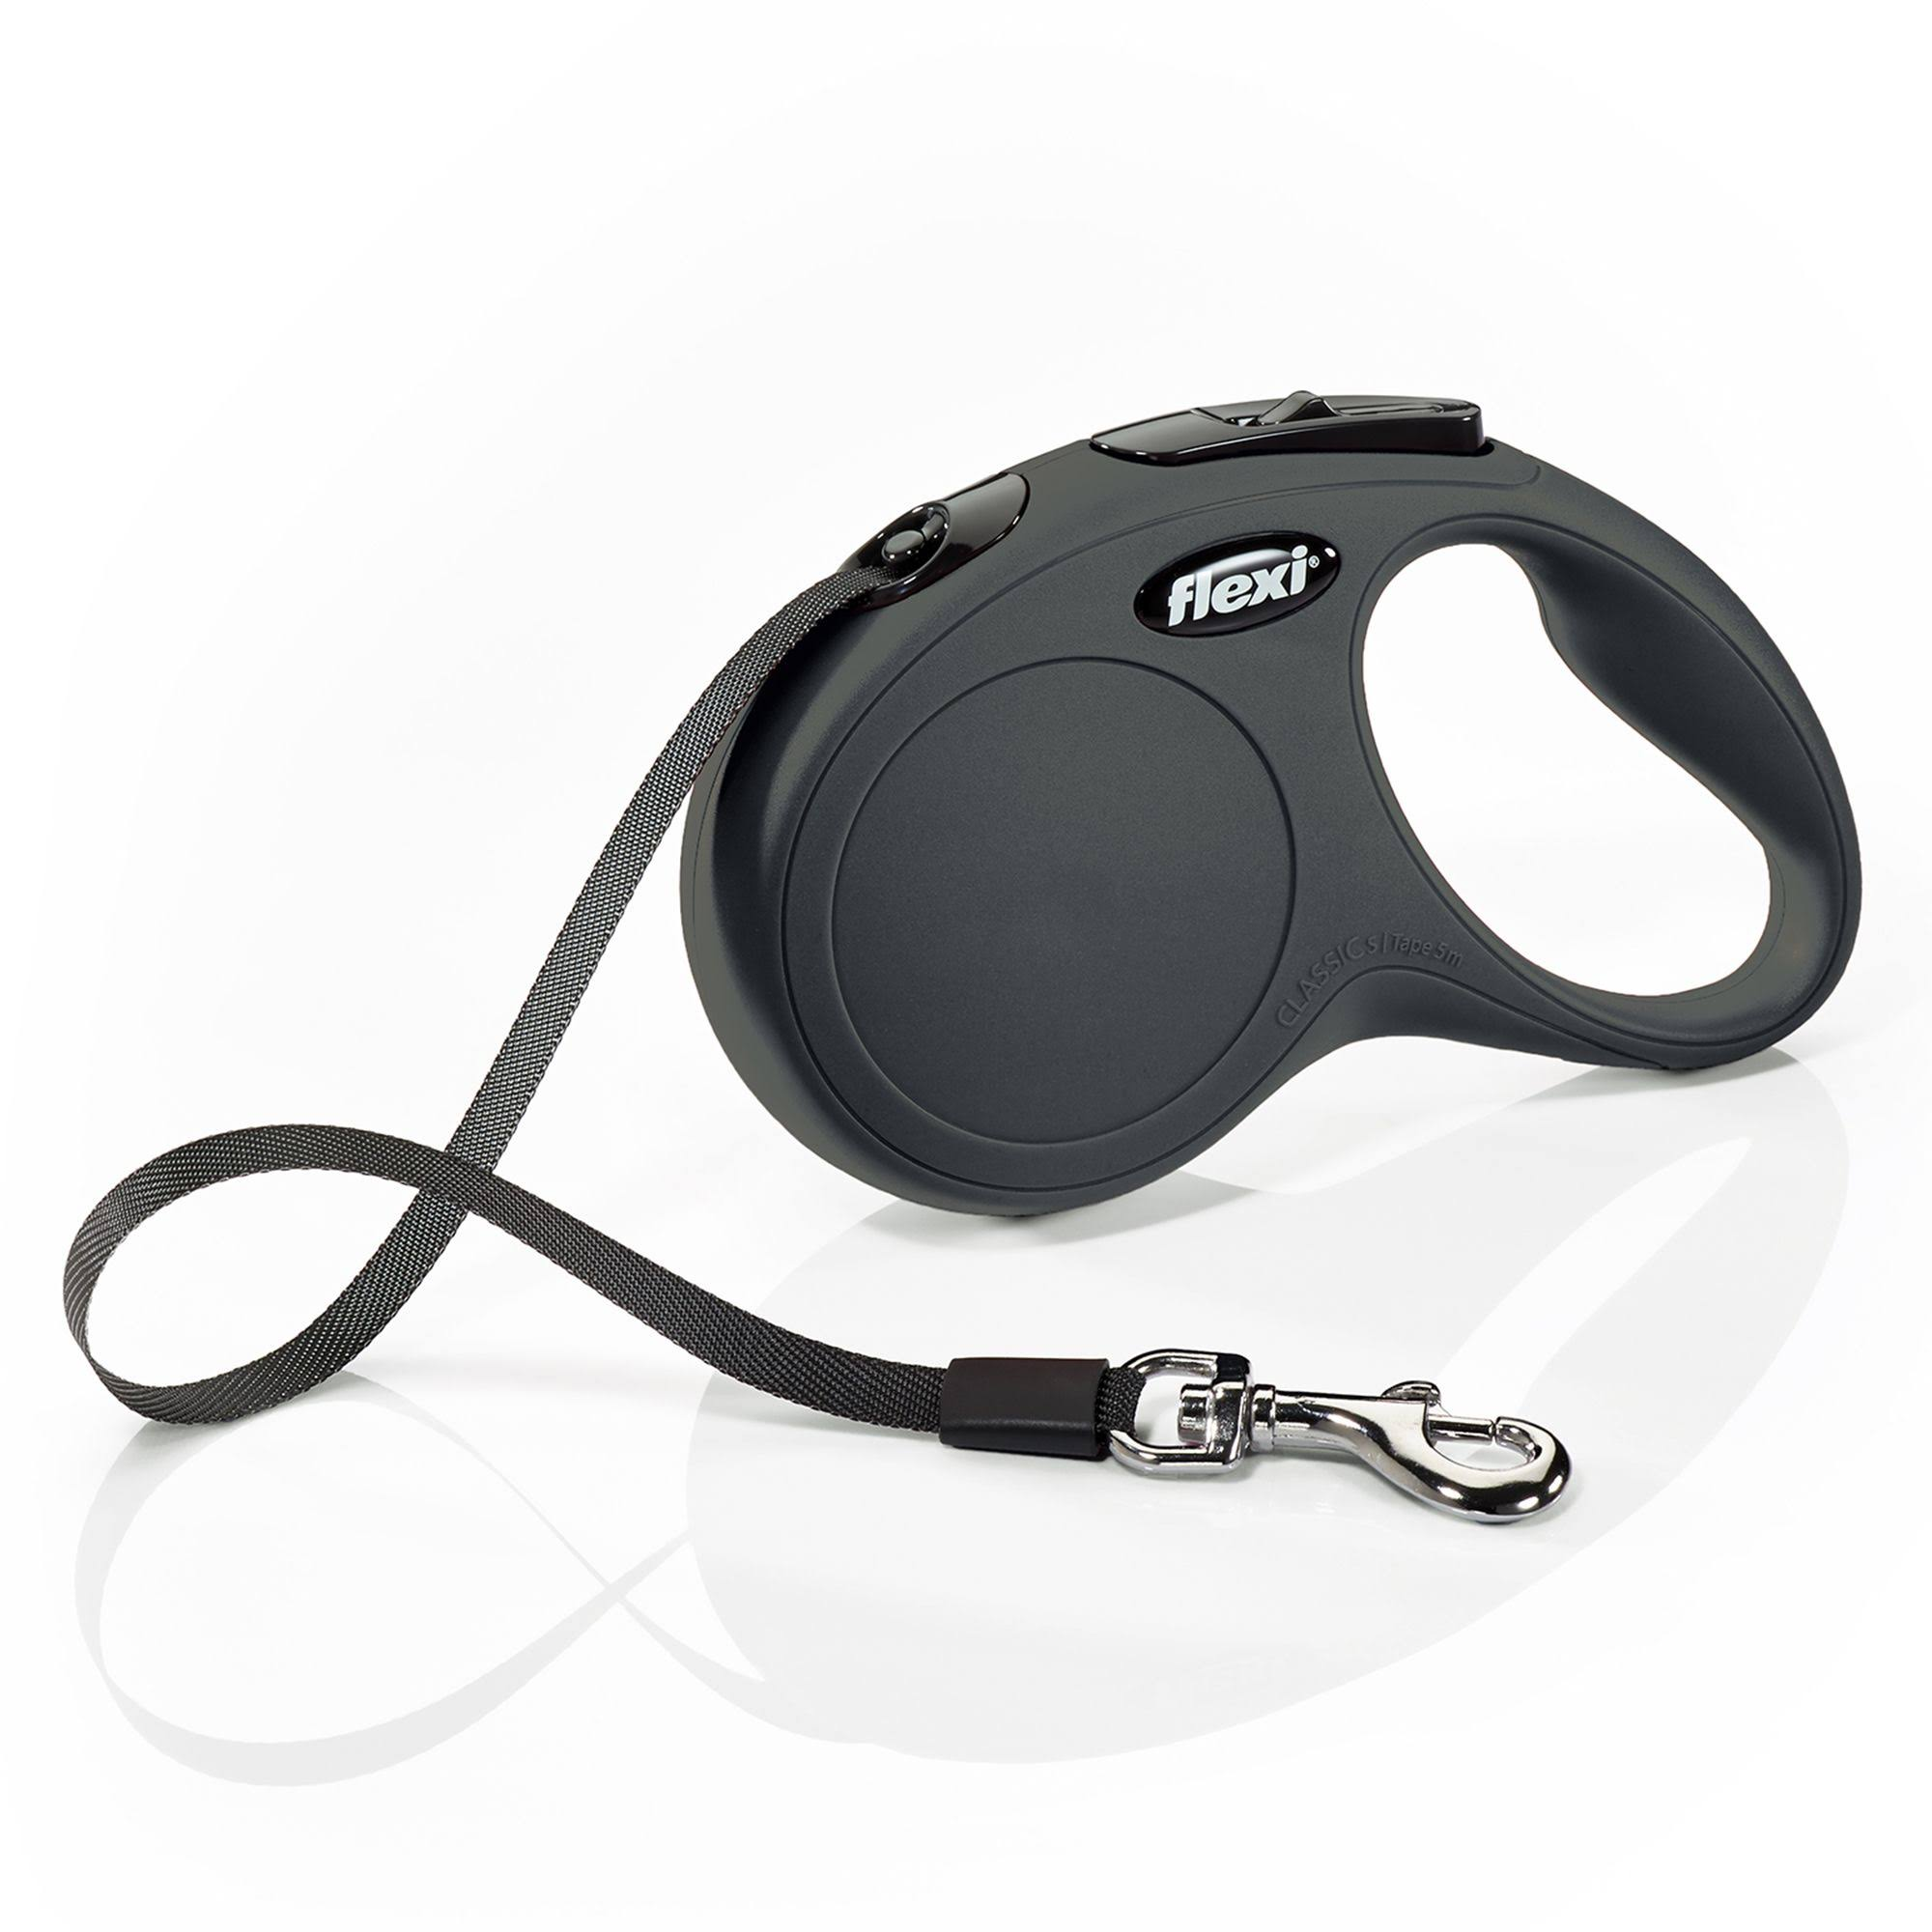 Flexi Classic Retractable Tape Leash - Black, 16'